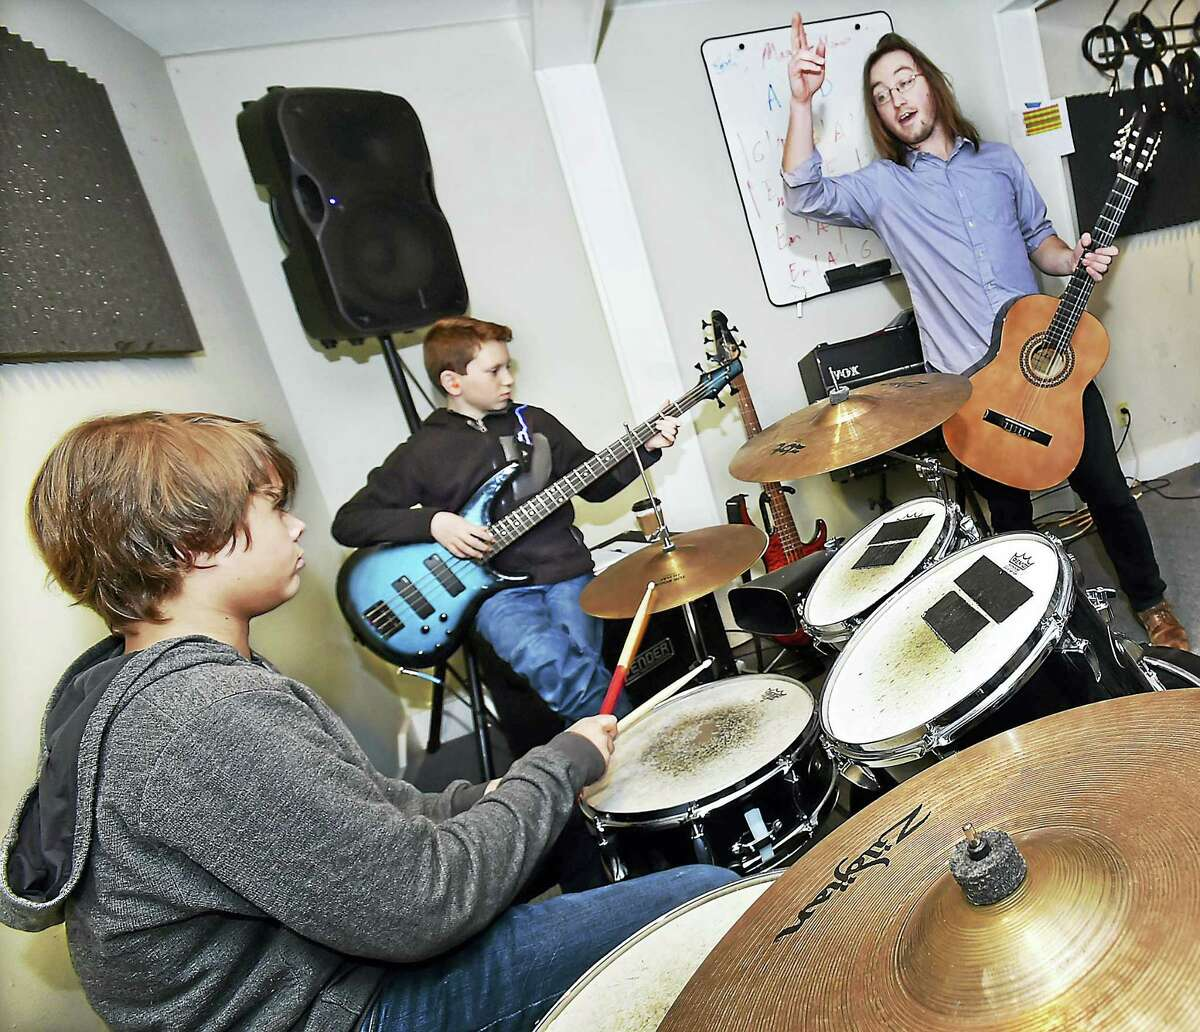 Music instructor Brendan Galvin, of Guilford, works with drummer James Pagano and Evan Landau, both 12 of Madison, during a band session at the Madison School of Rock Thursday.